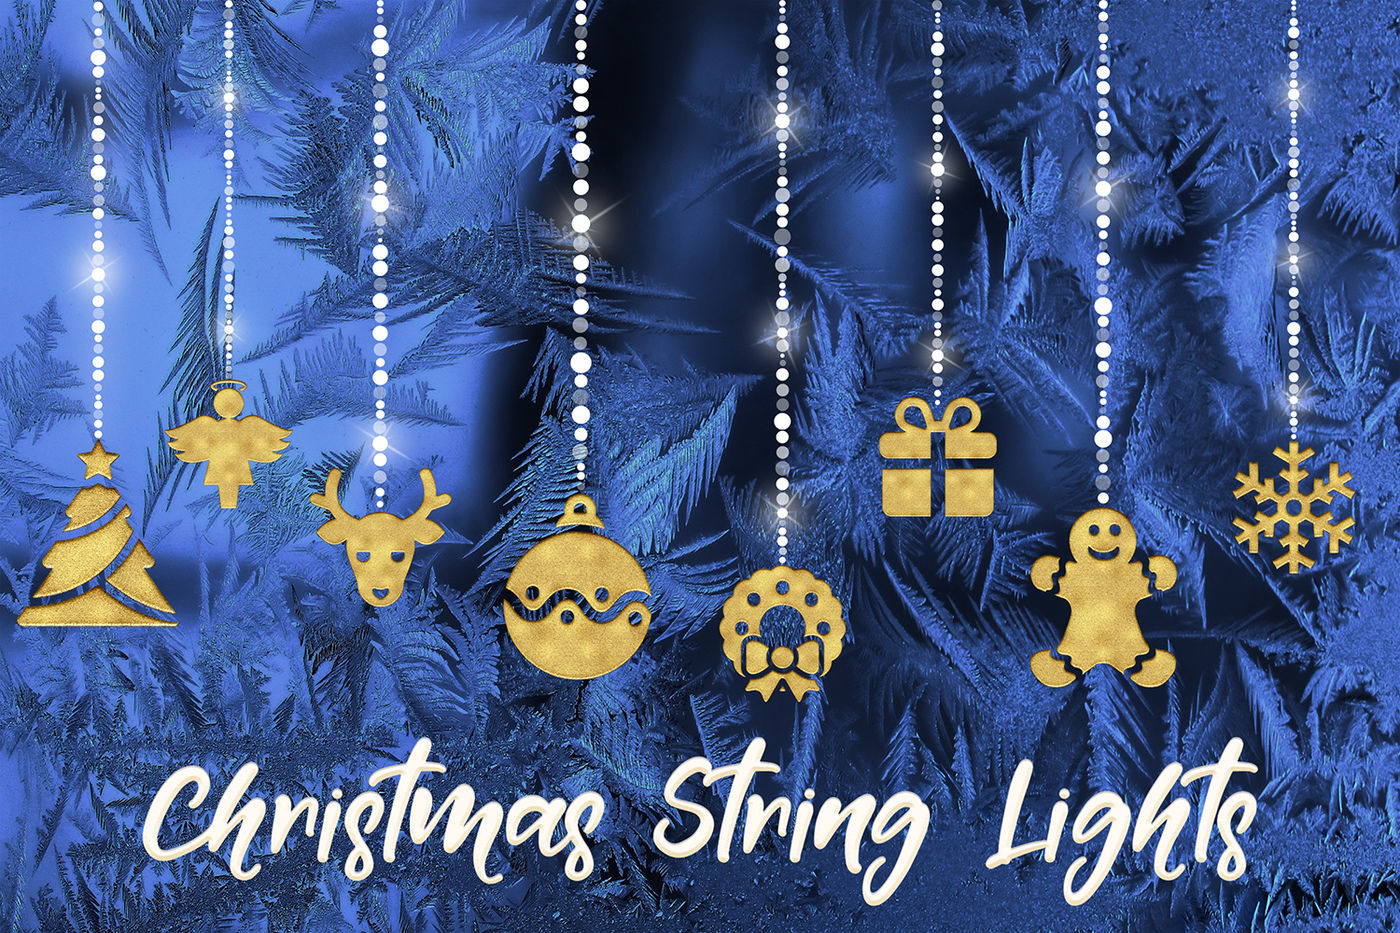 Christmas String Lights Clipart By North Sea Studio